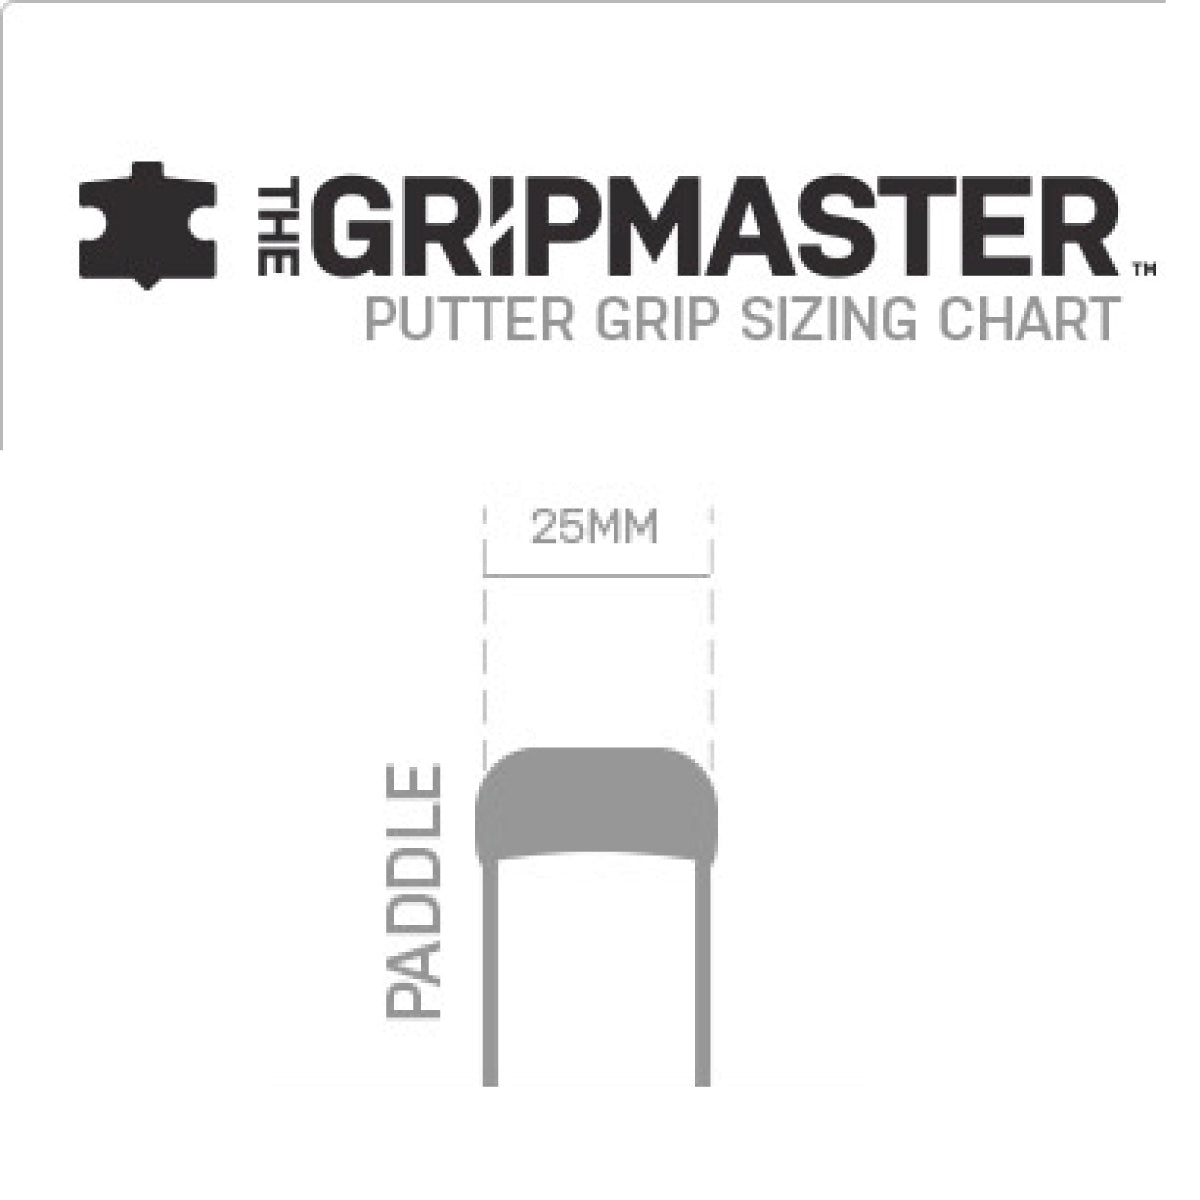 Grip Master Putter - Paddle Tour Laced